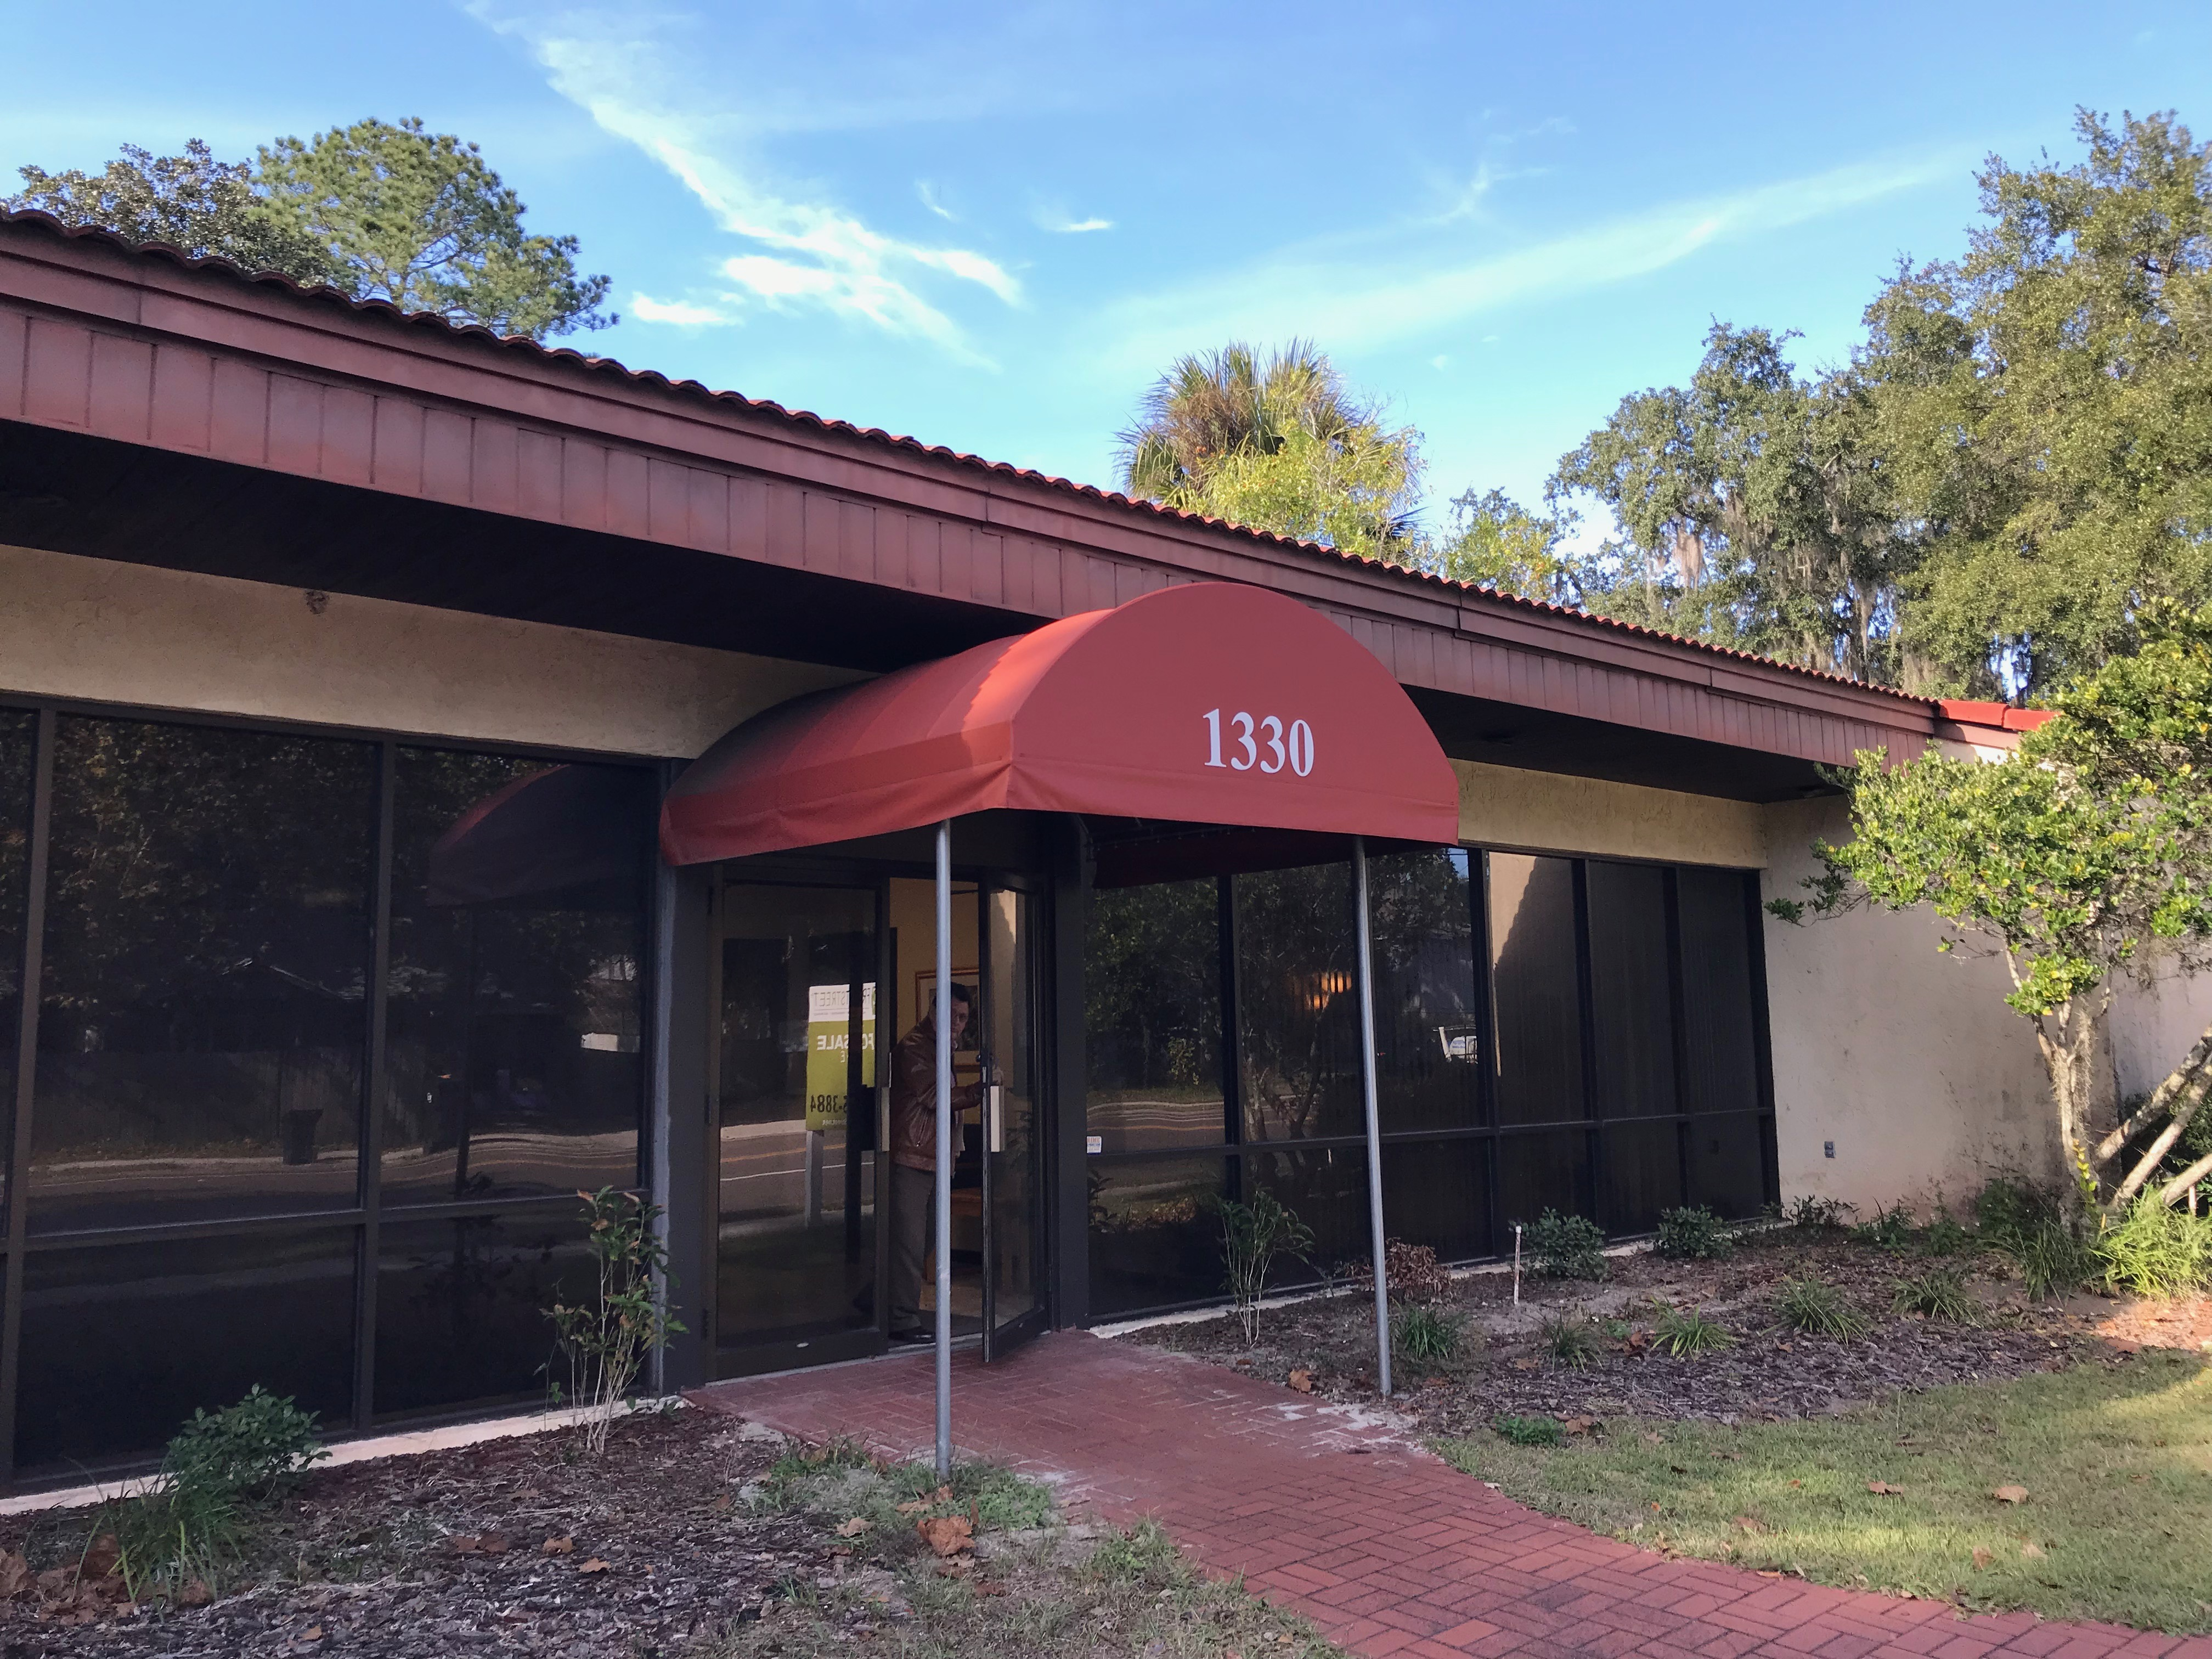 Office suite in well maintained office building close to the University of Florida and downtown Gainesville.